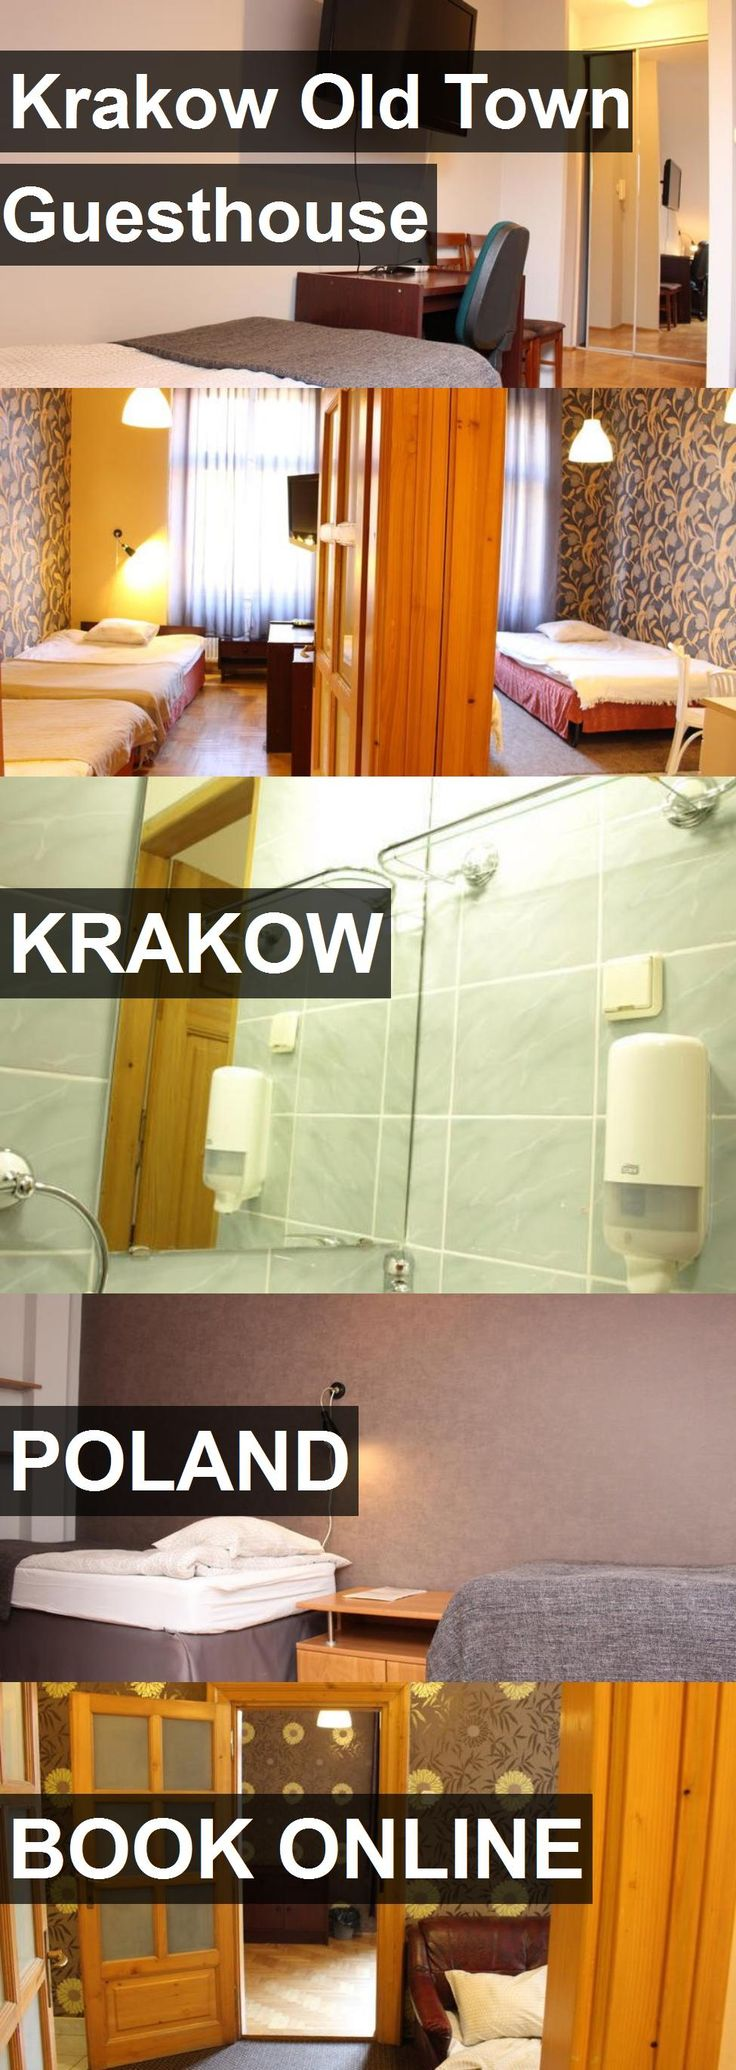 Hotel Krakow Old Town Guesthouse in Krakow, Poland. For more information, photos, reviews and best prices please follow the link. #Poland #Krakow #KrakowOldTownGuesthouse #hotel #travel #vacation